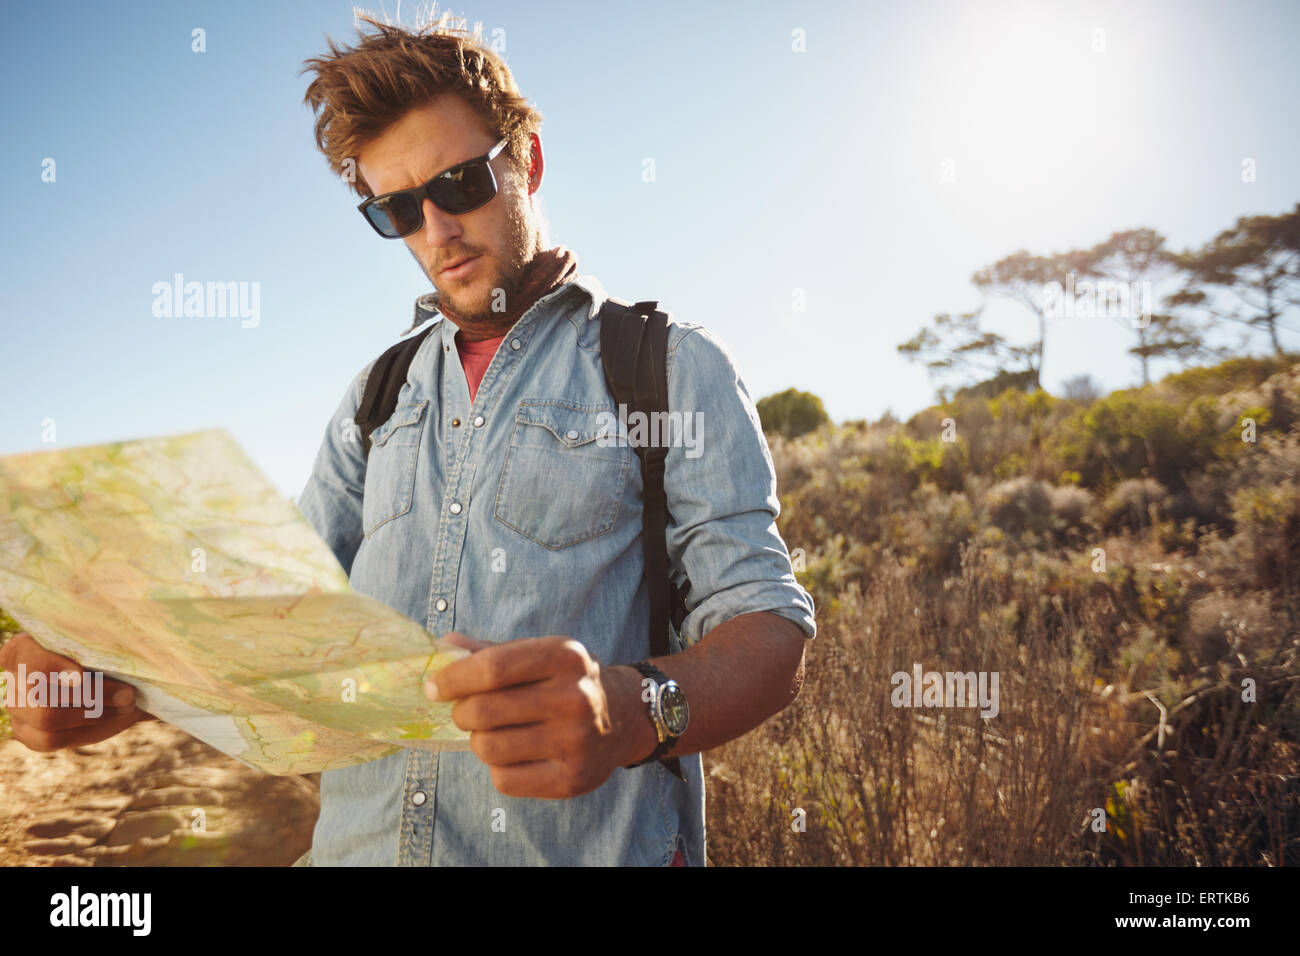 Shot of a handsome hiker using a map. Hiker using a map to navigate his hike on a summer day. Stock Photo